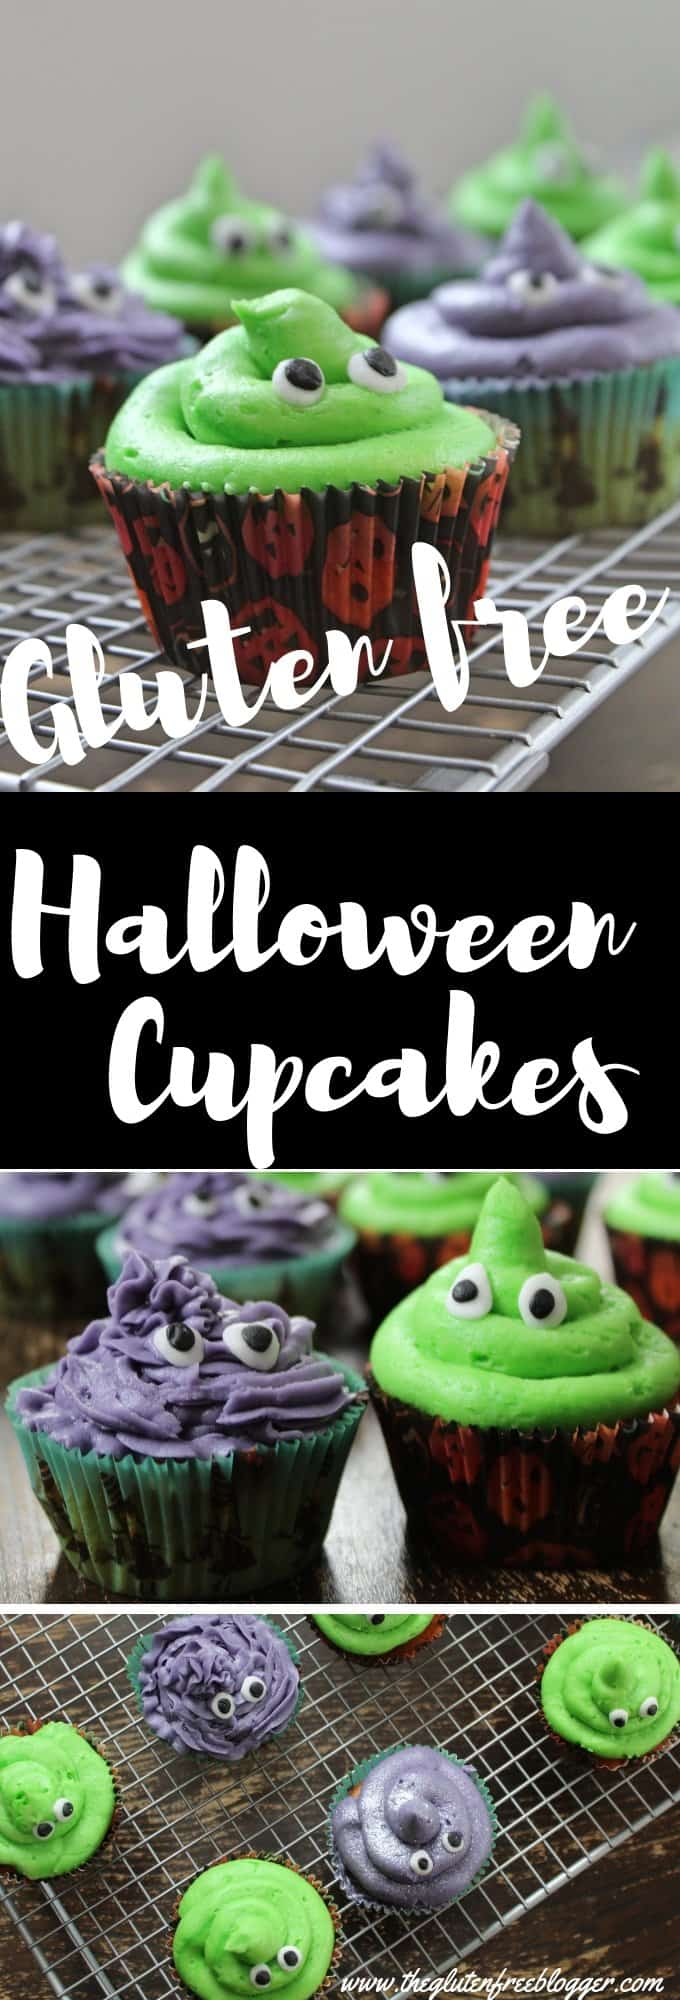 gluten free halloween cupcakes - monster cupcakes - dairy free - halloween party food - recipe